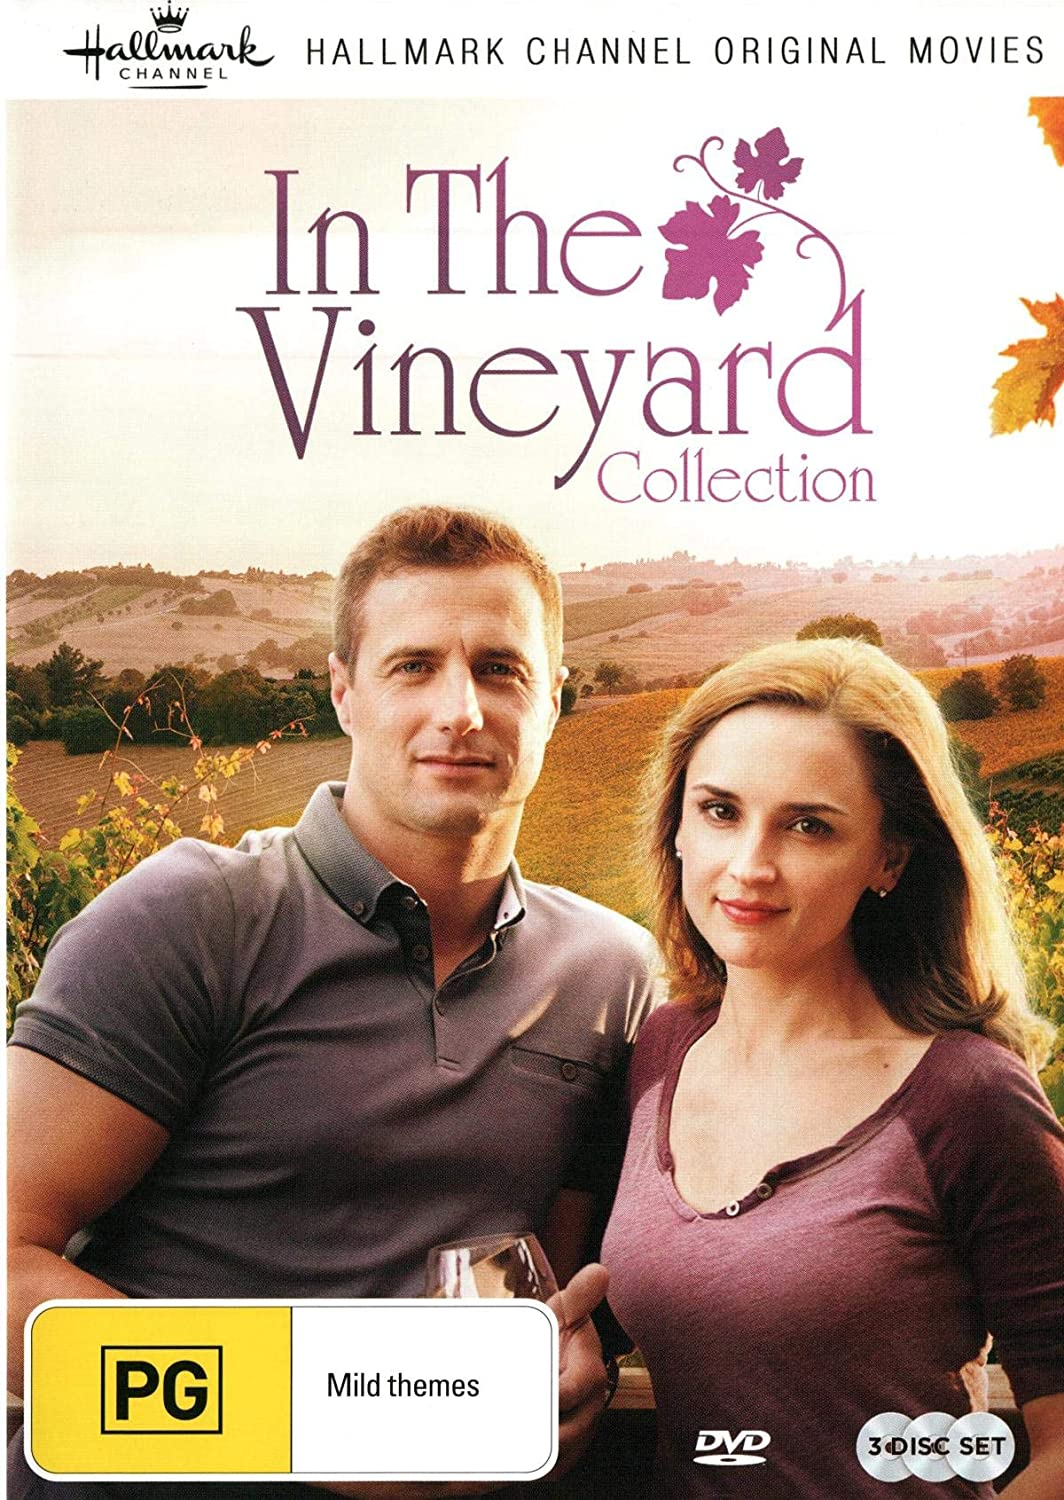 In The Vineyard - 3 Film Collection (Autumn in the Vineyard/Summer in the Vineyard/Valentine in the Vineyard)